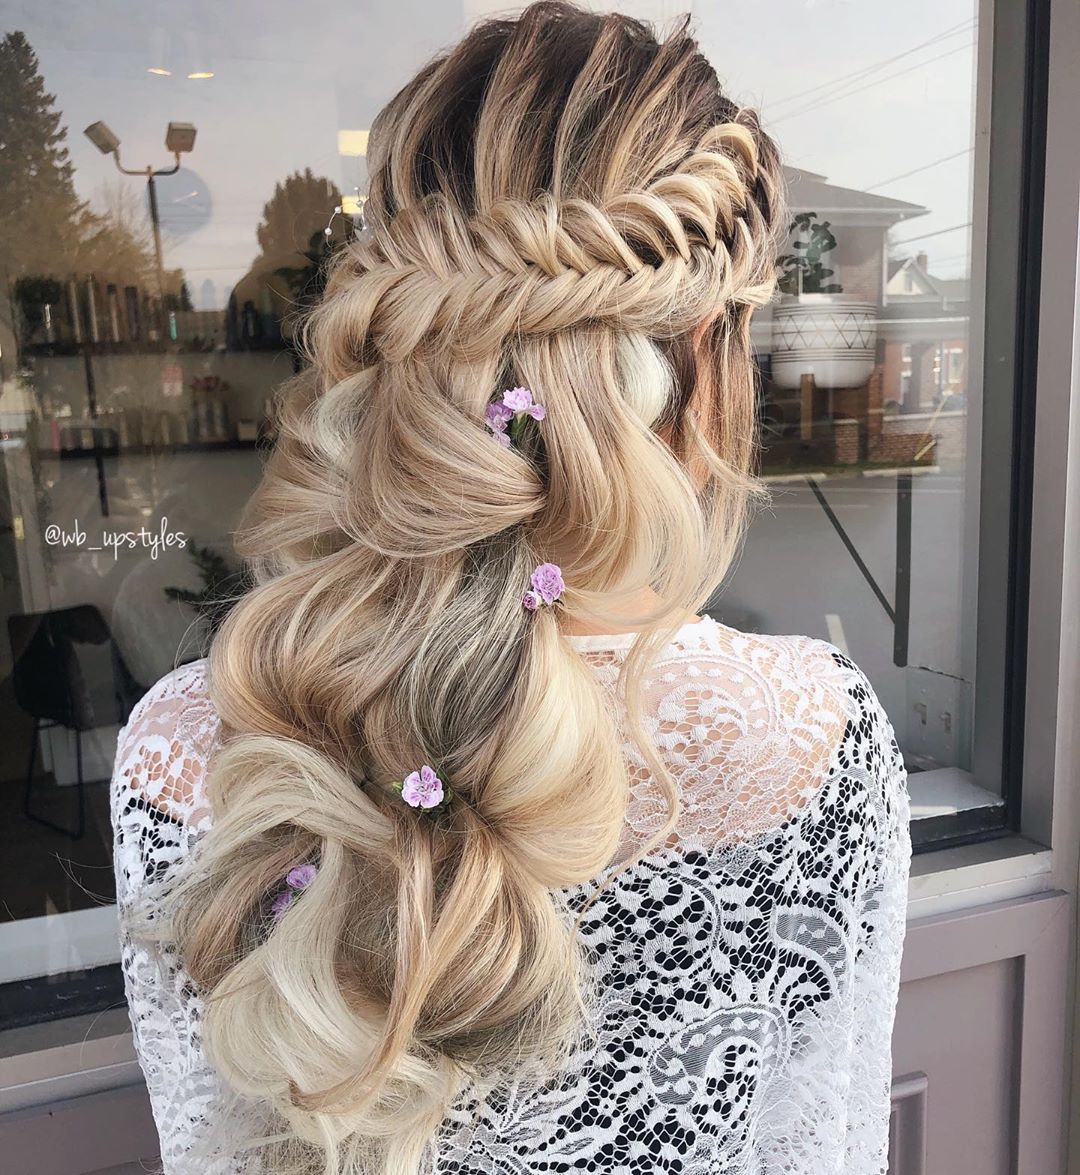 Fishtail Wrap in Boho Braid style